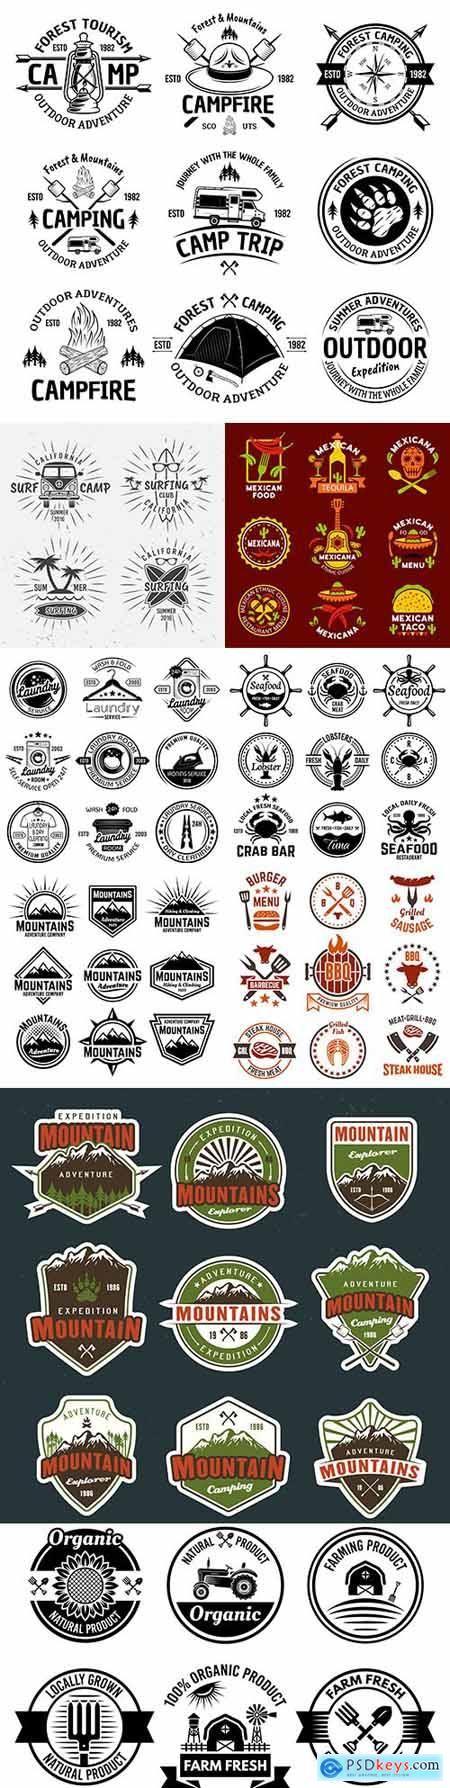 Vintage antique emblems and logos with text design 13